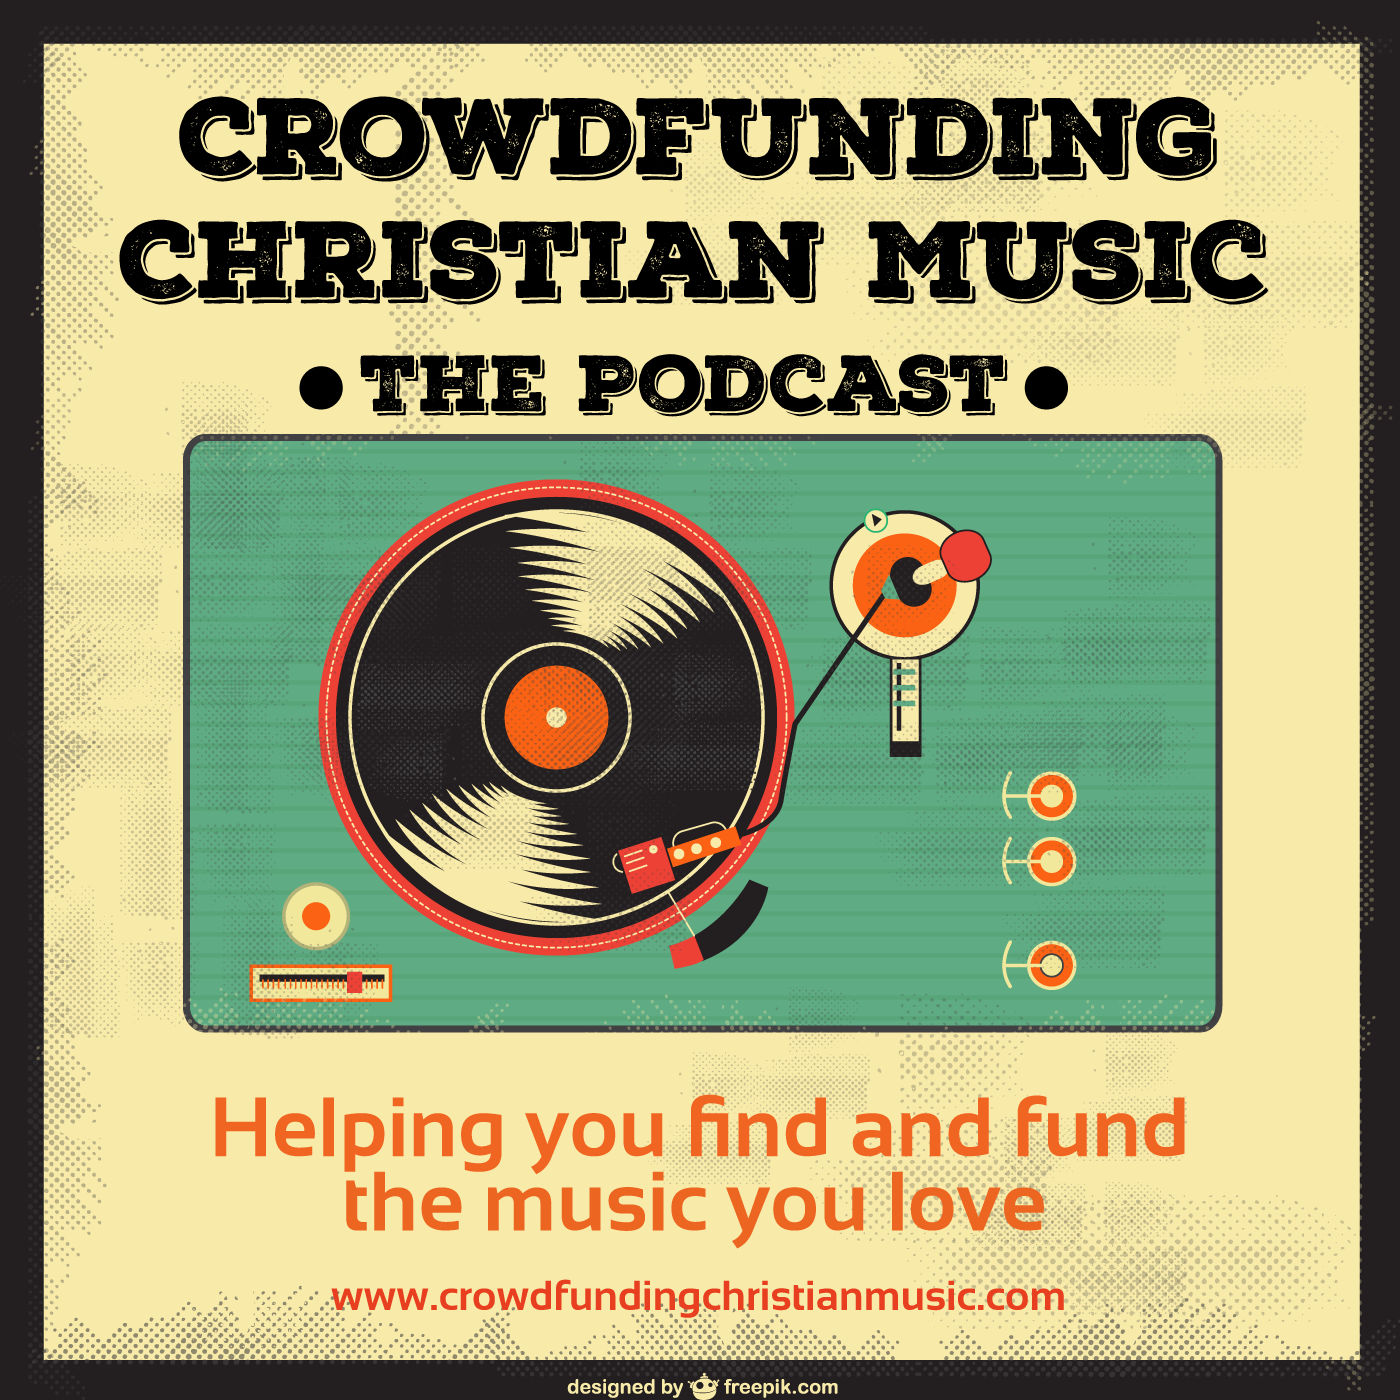 Crowdfunding Christian Music Video